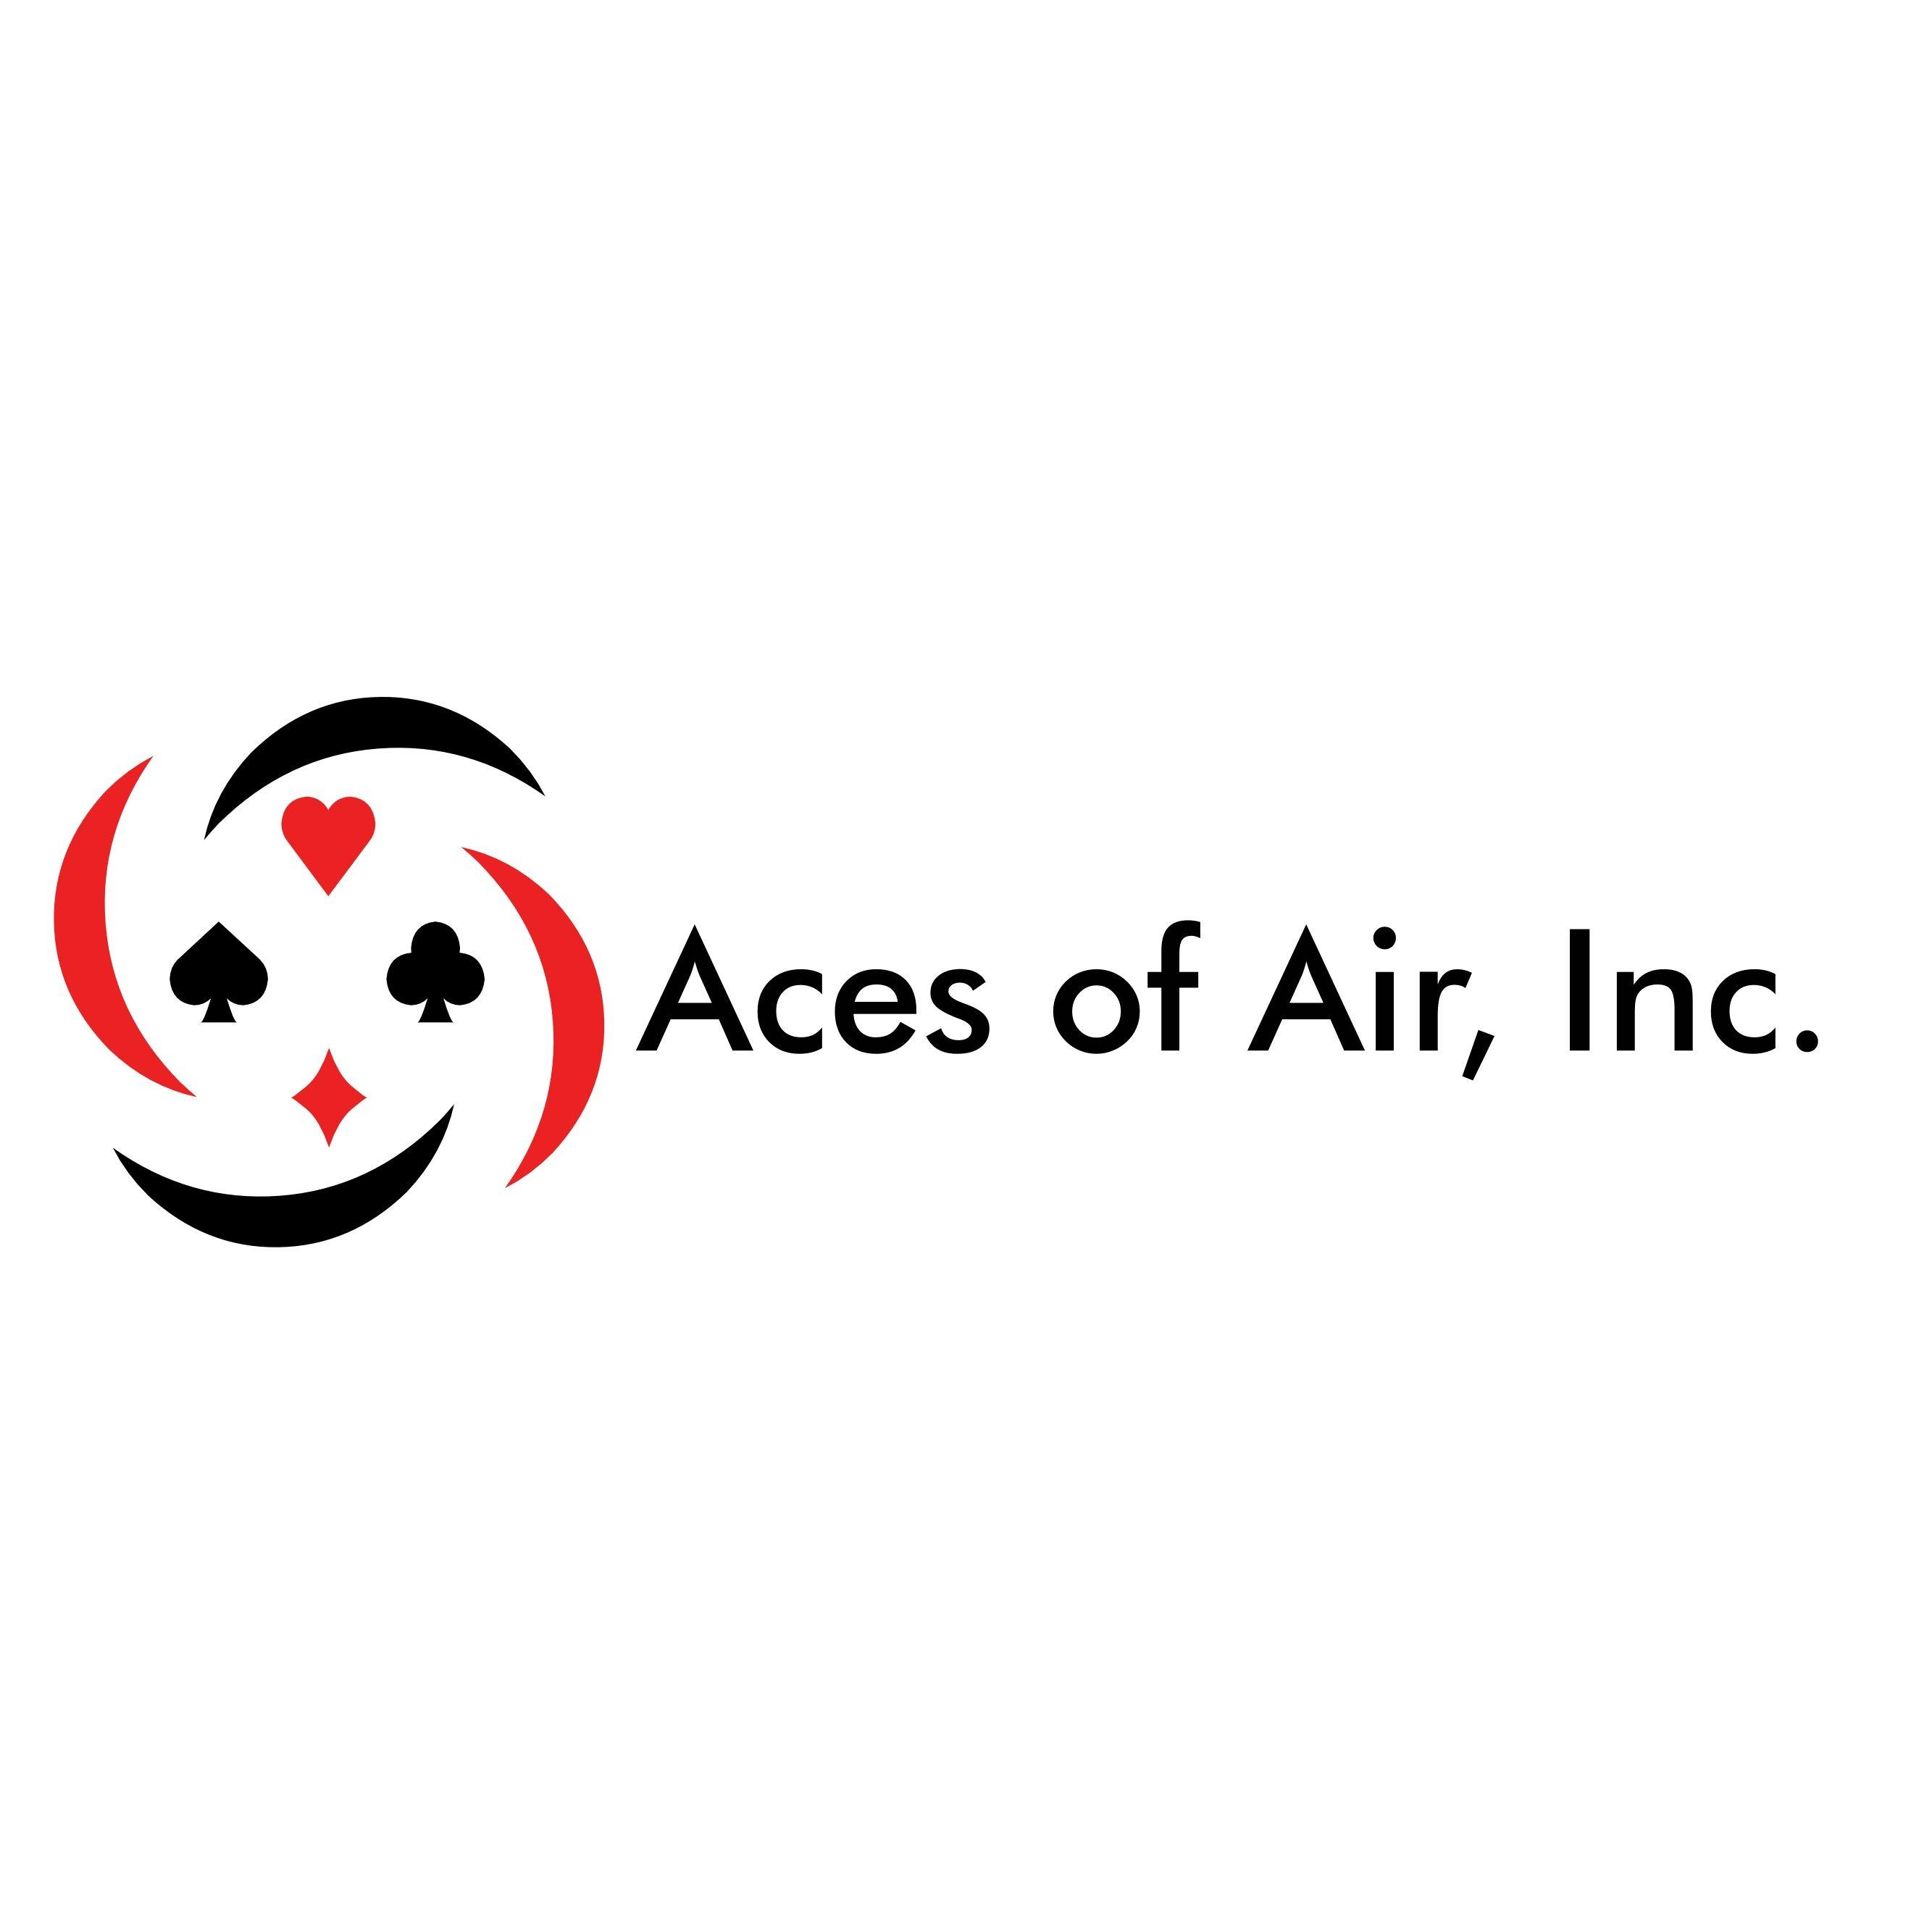 Aces of Air Inc image 1